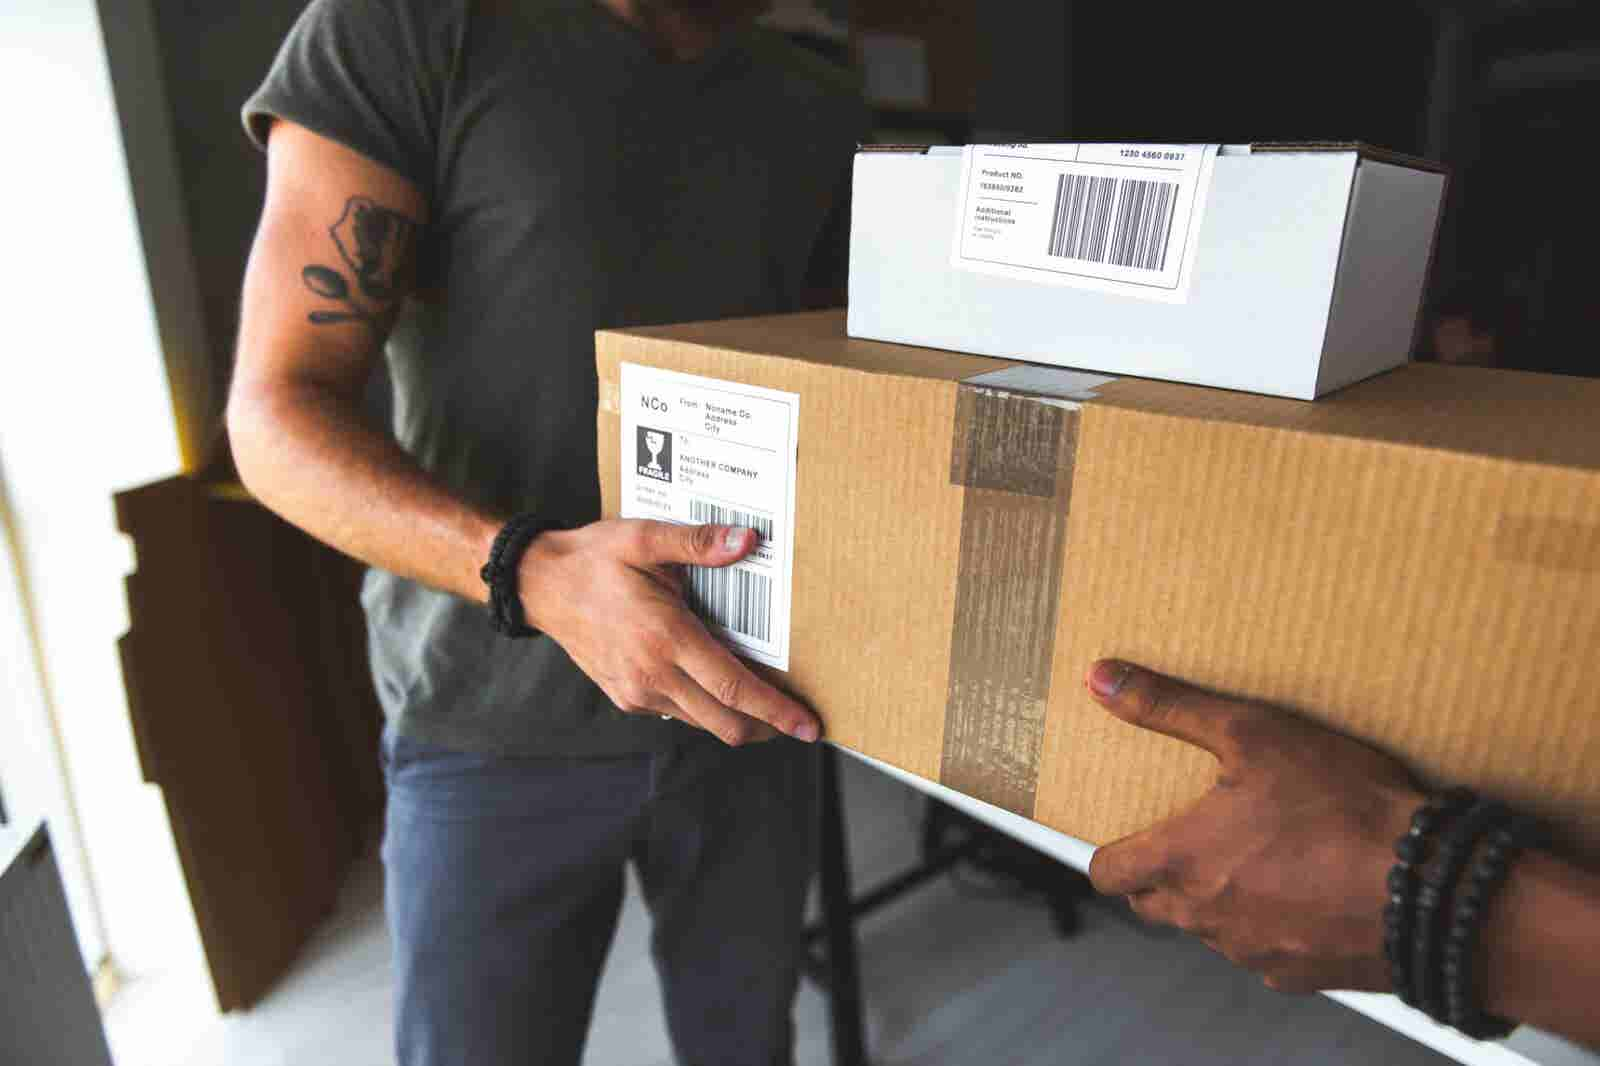 Can You Still Make Money Dropshipping in 2019?